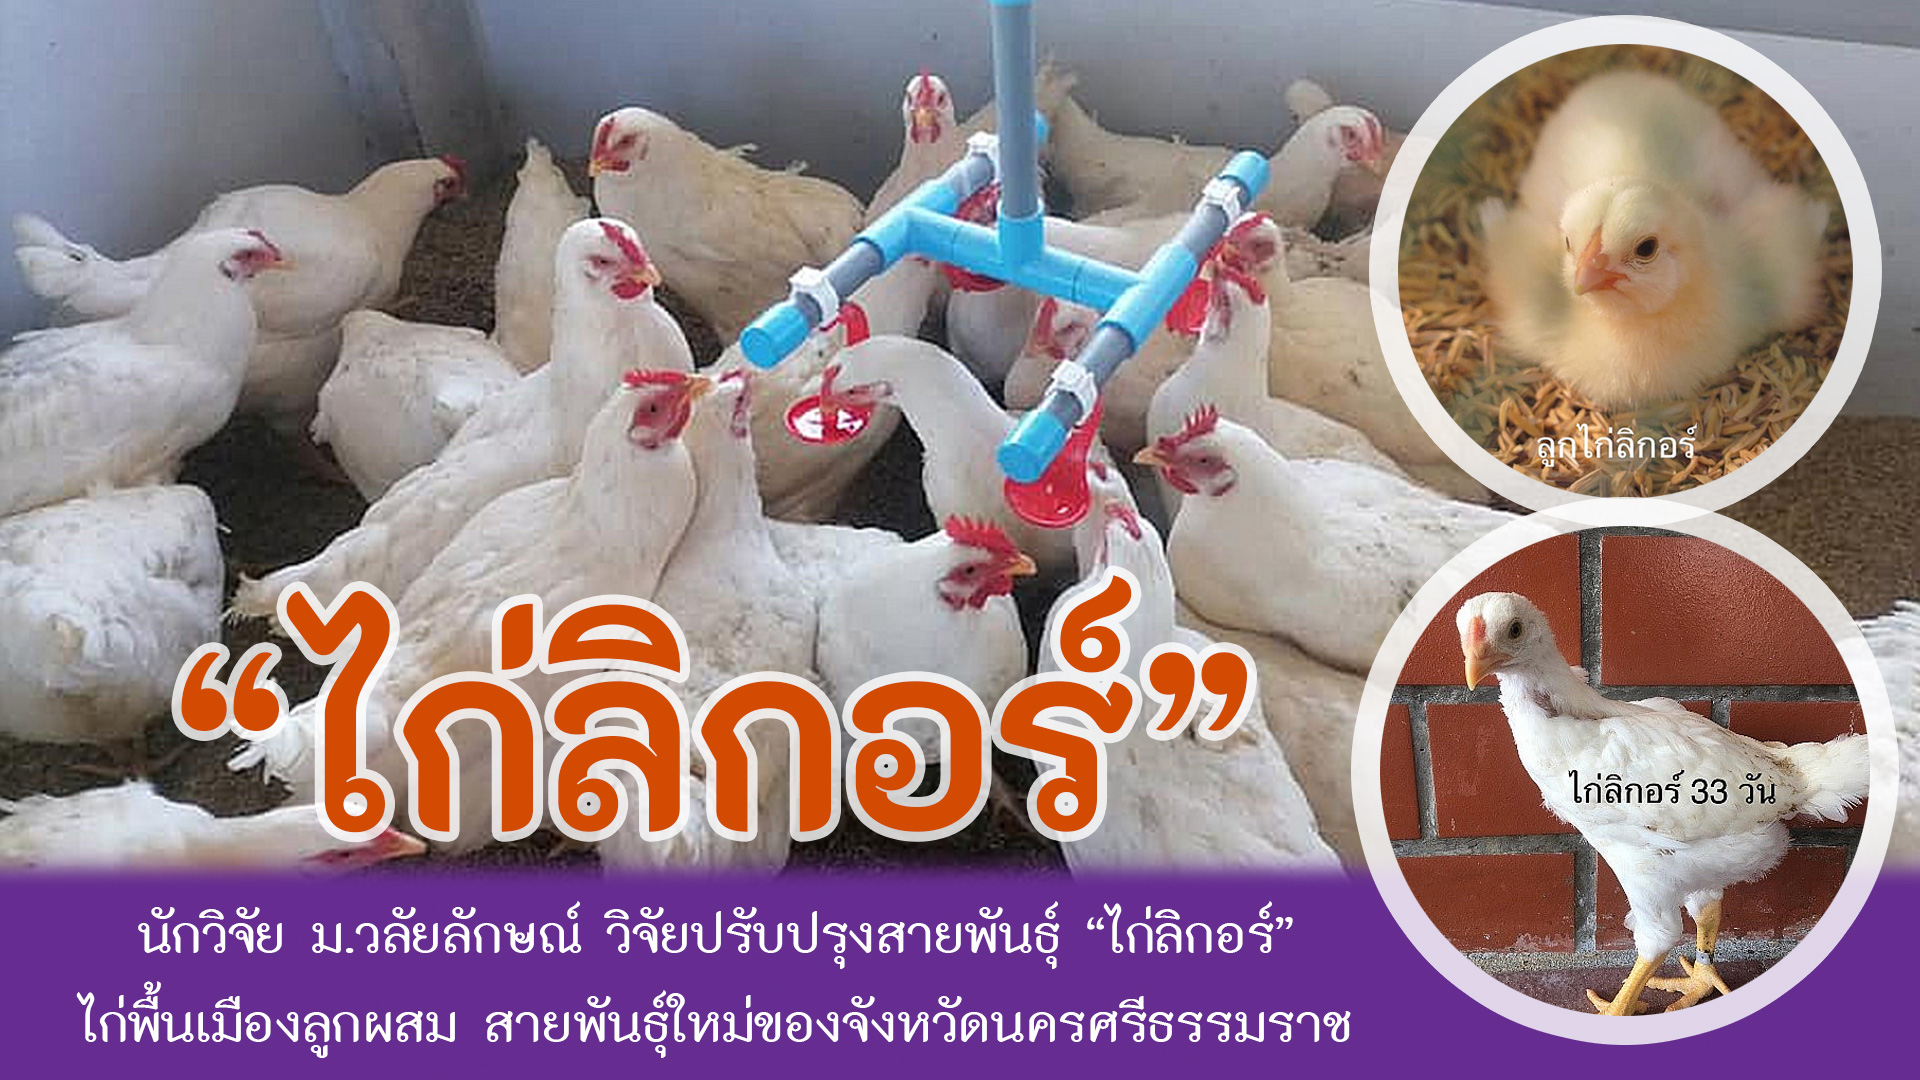 WU researchers improve chicken breed called Ligor Chicken, a hybrid native chicken and a new breed of Nakhon Si Thammarat province.